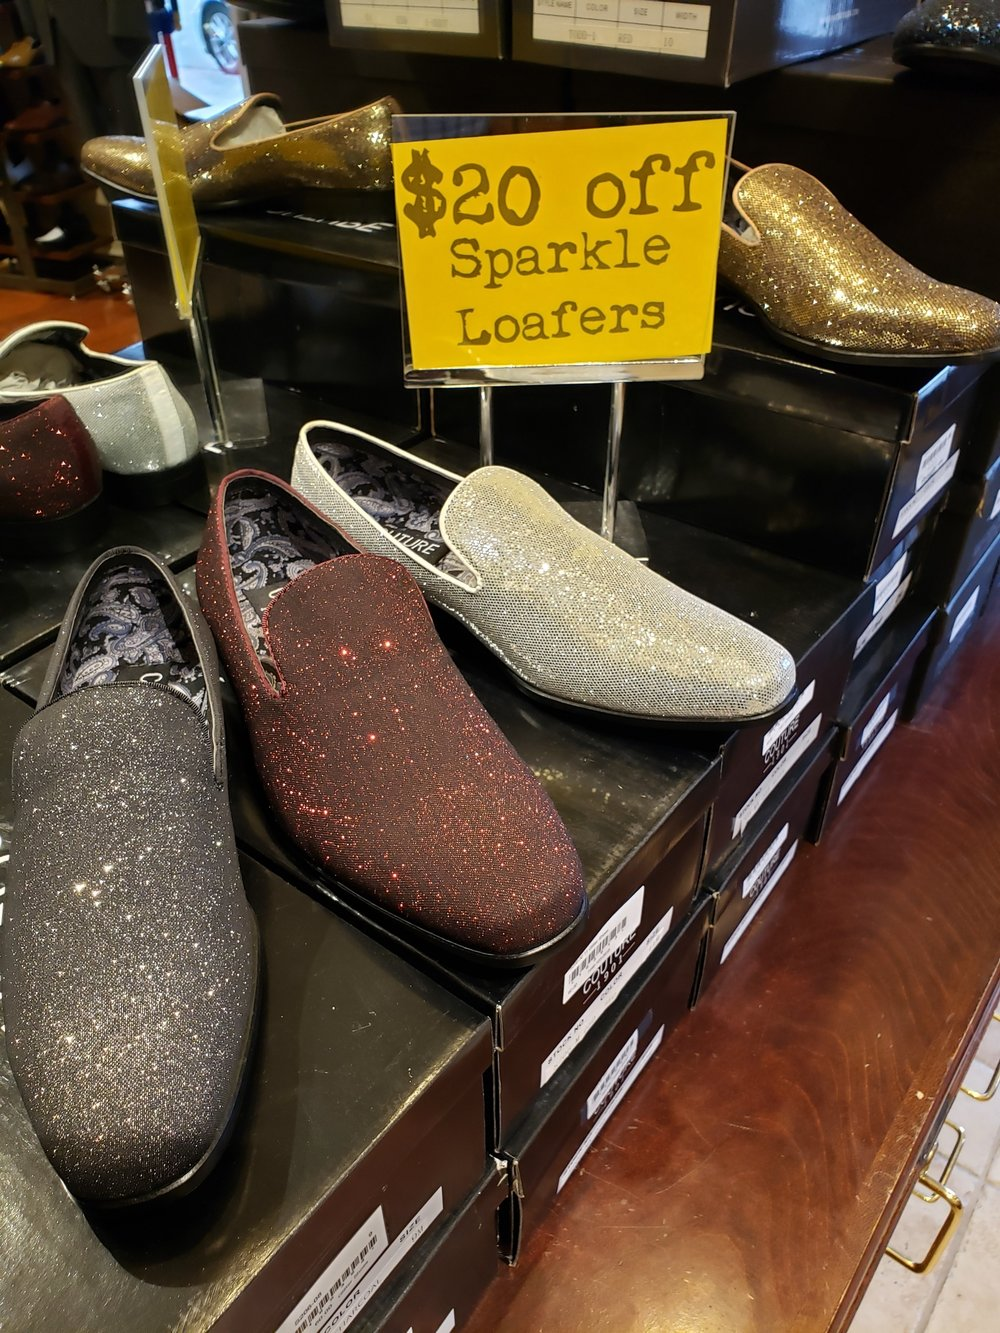 For the style maven: - From Bernard's Formal Wear, Durham's go-to for proms, weddings, and all of life's big events:Sparkle Loafers (do we really need to say anything else about these amazing shoes?)! Great for the gentleman in your life who isn't afraid to step things up a notch when it comes to style.